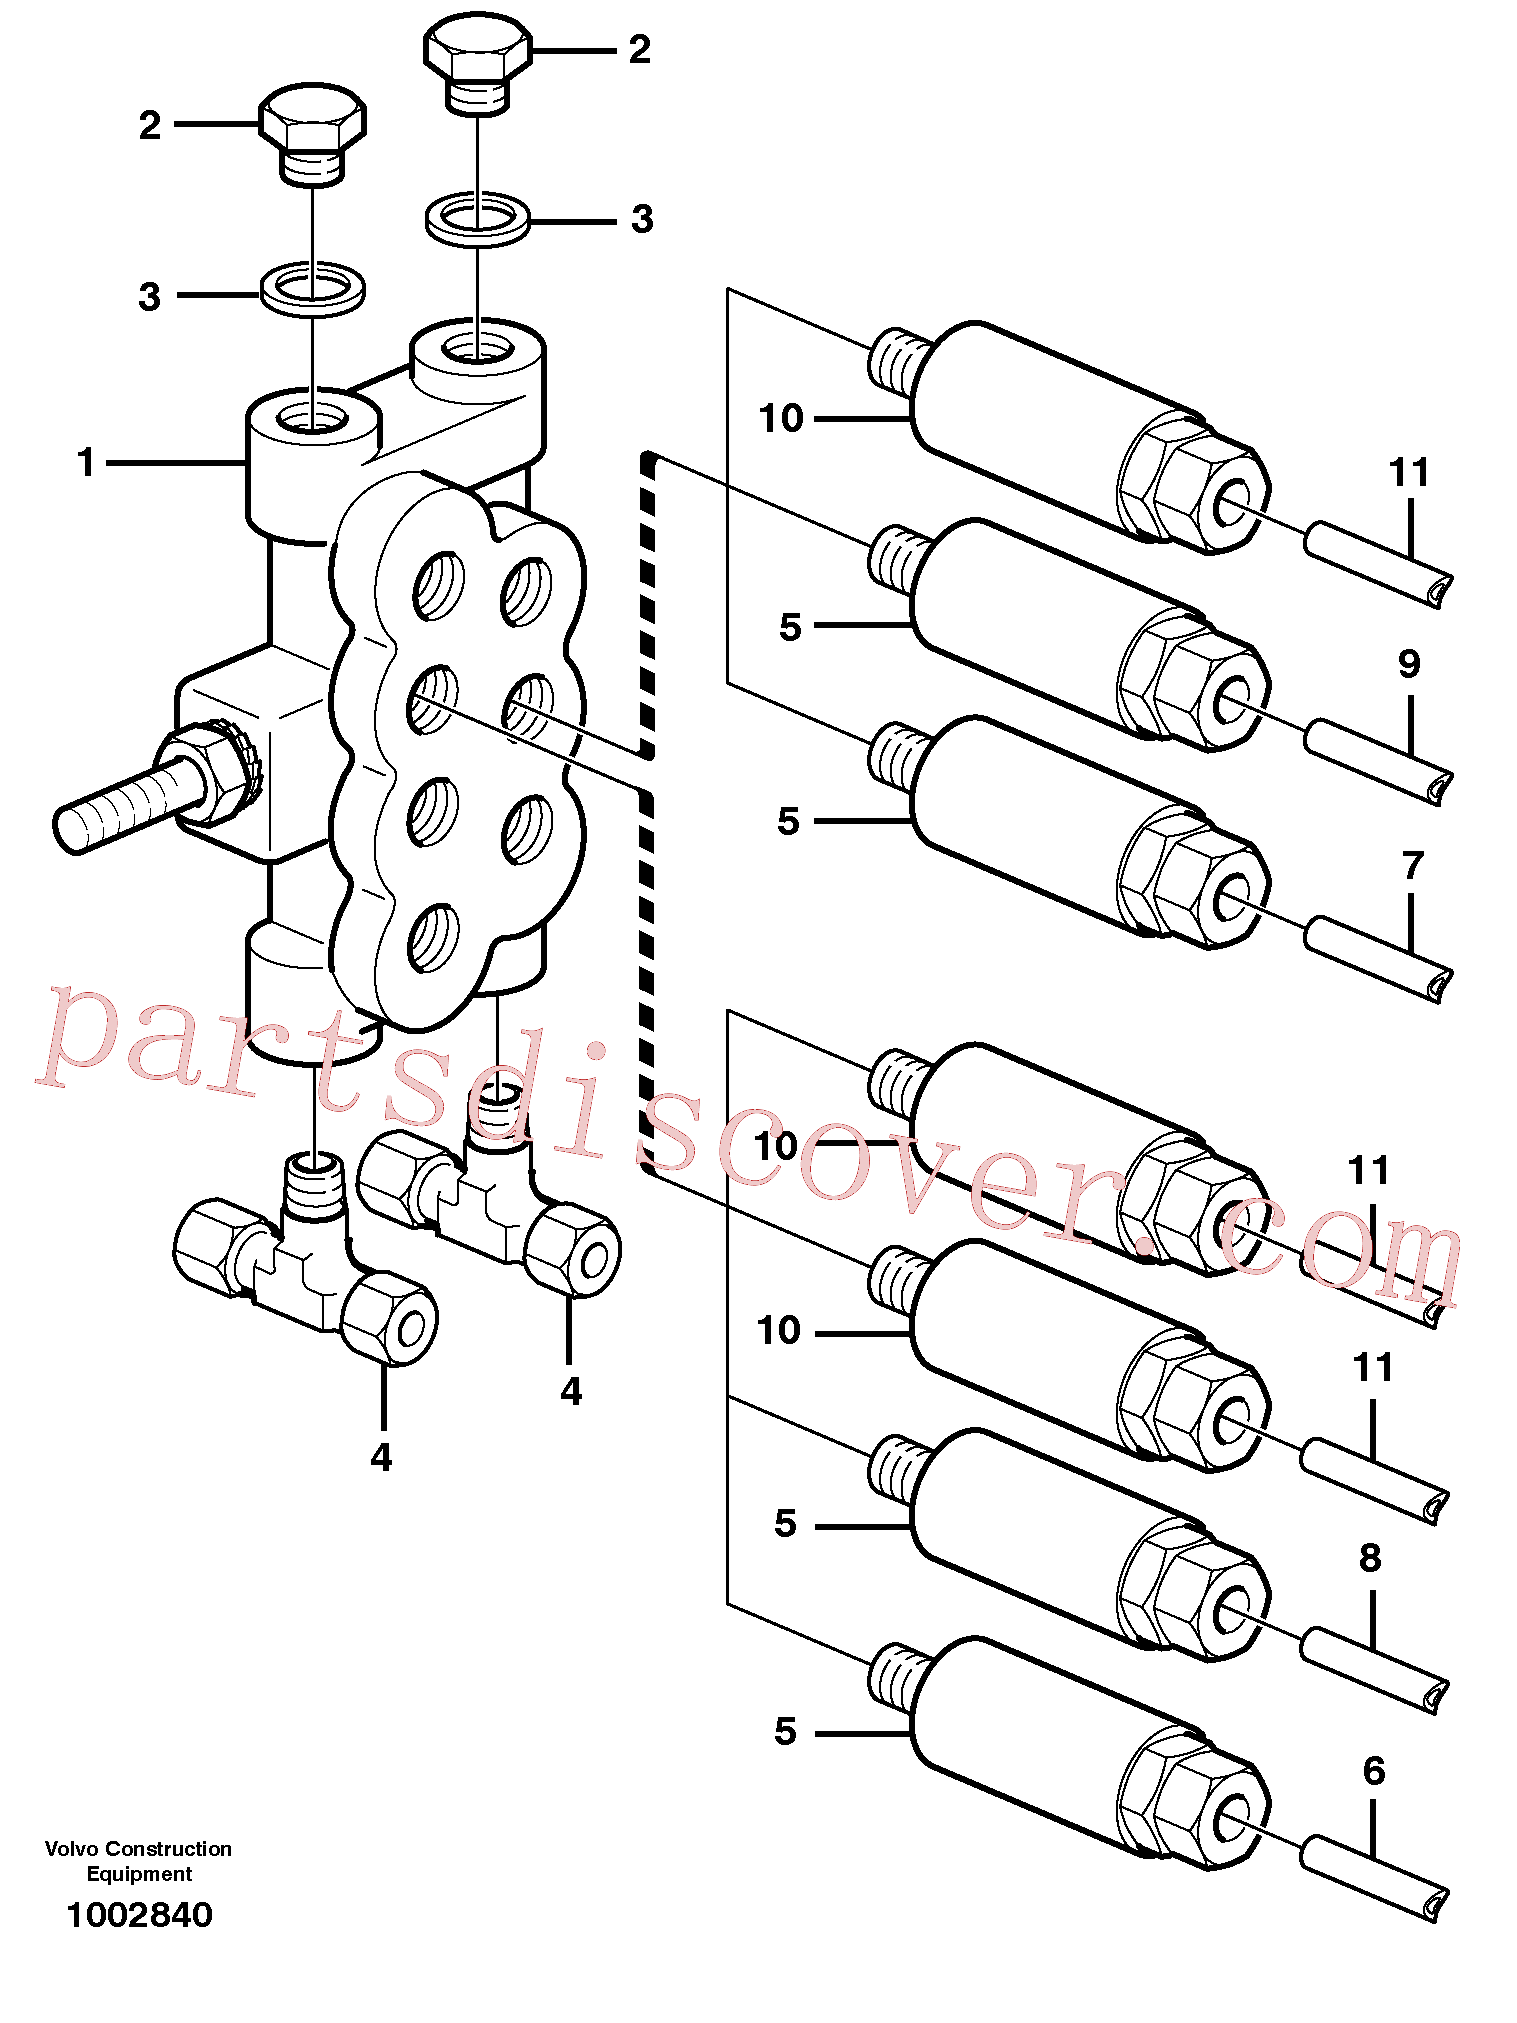 VOE192598 for Volvo Distribution block, B1.(1002840 assembly)